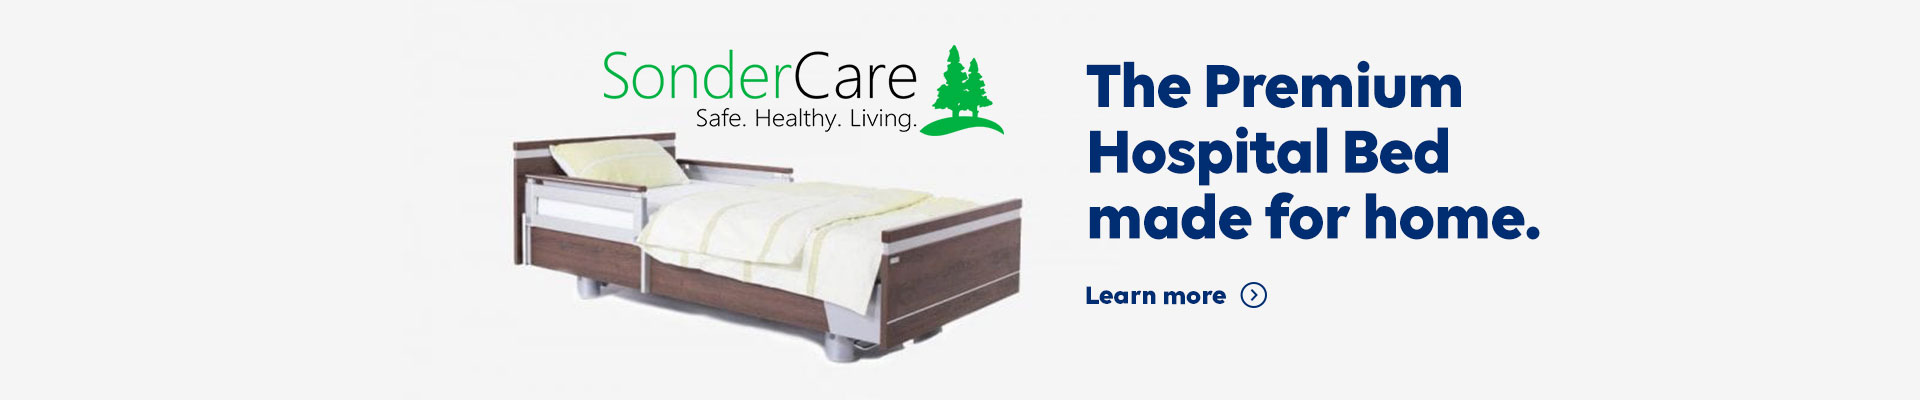 SonderCare. Safe. Healthy. Living. The Premium Hospital Bed made for home. Learn more.